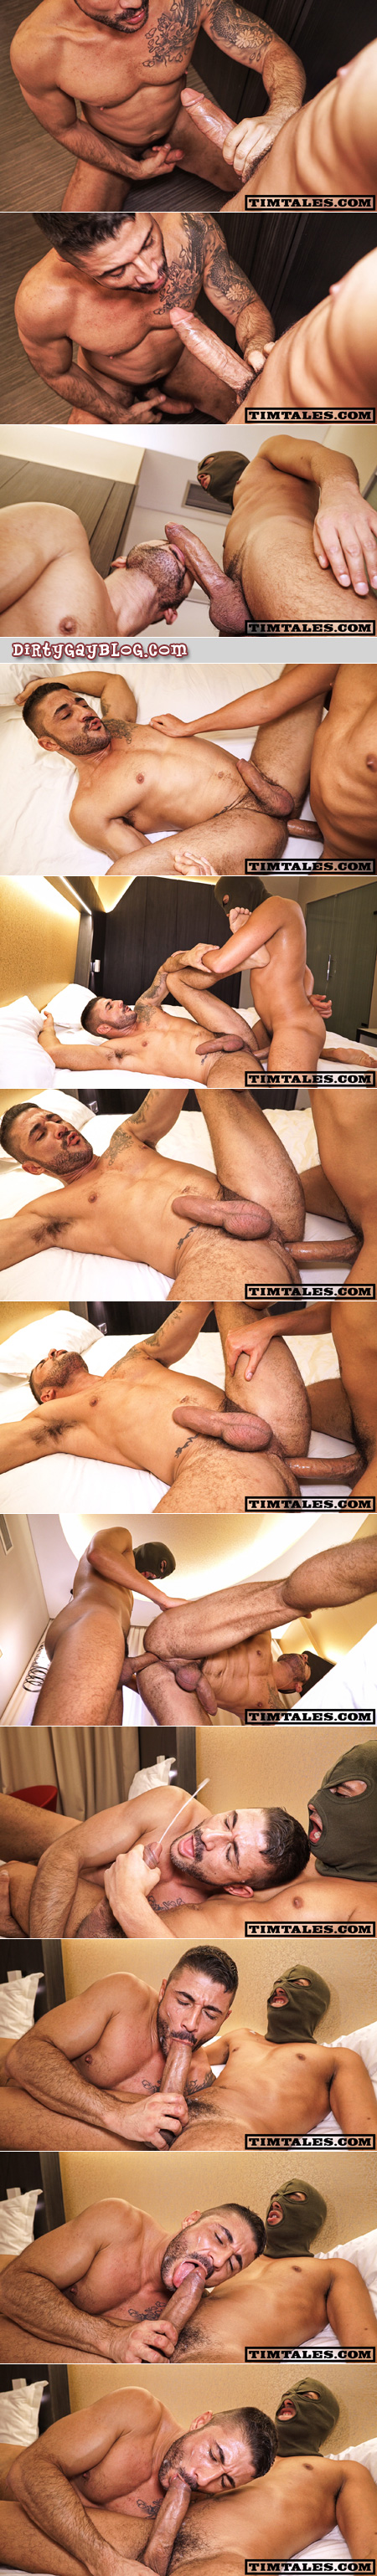 Spanish muscle hunk taking an enormous uncut cock in his ass bareback.